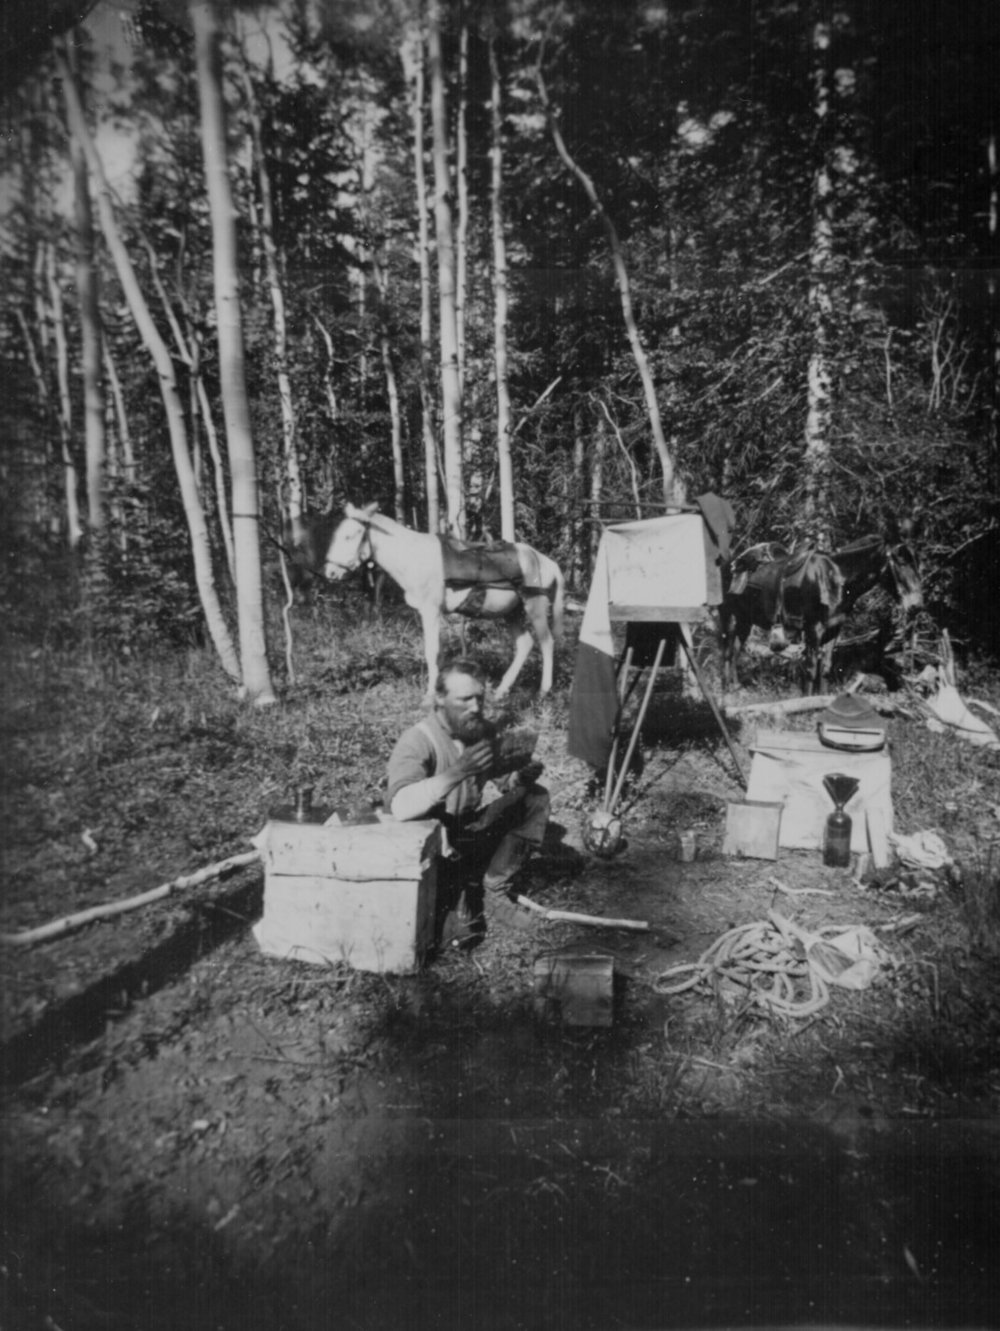 Photographer John K. Hillers, namesake of Mount Hillers, with his portable darkroom, 1872. Image in care of the National Archives.